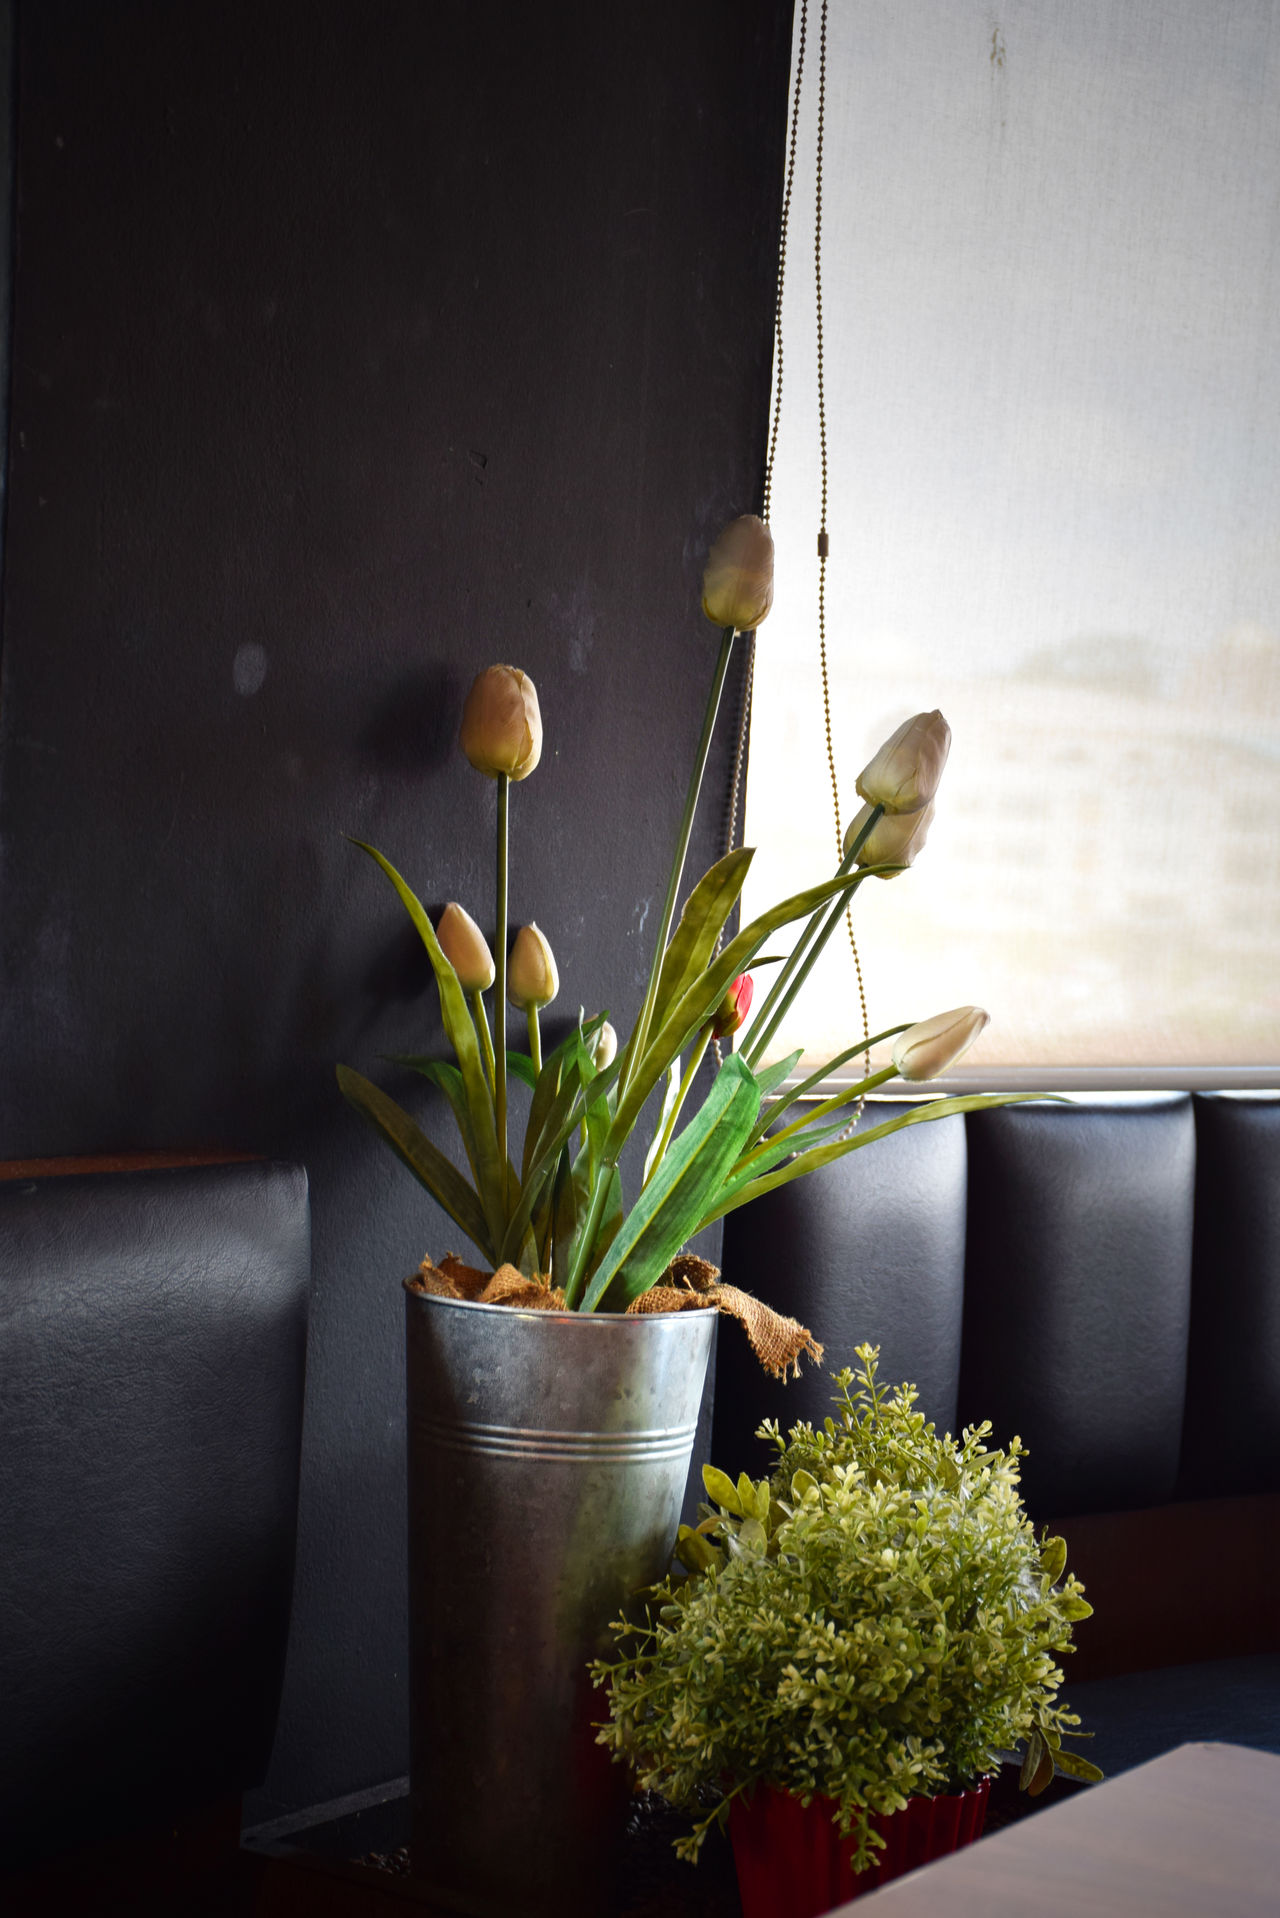 Blossom Botany Cafe Decoration Flower Flower Head Flower Pot Focus On Foreground Freshness In Bloom Leaf Nature Petal Plant Potted Plant Publika The Red Bean Ba Vase Window Sill